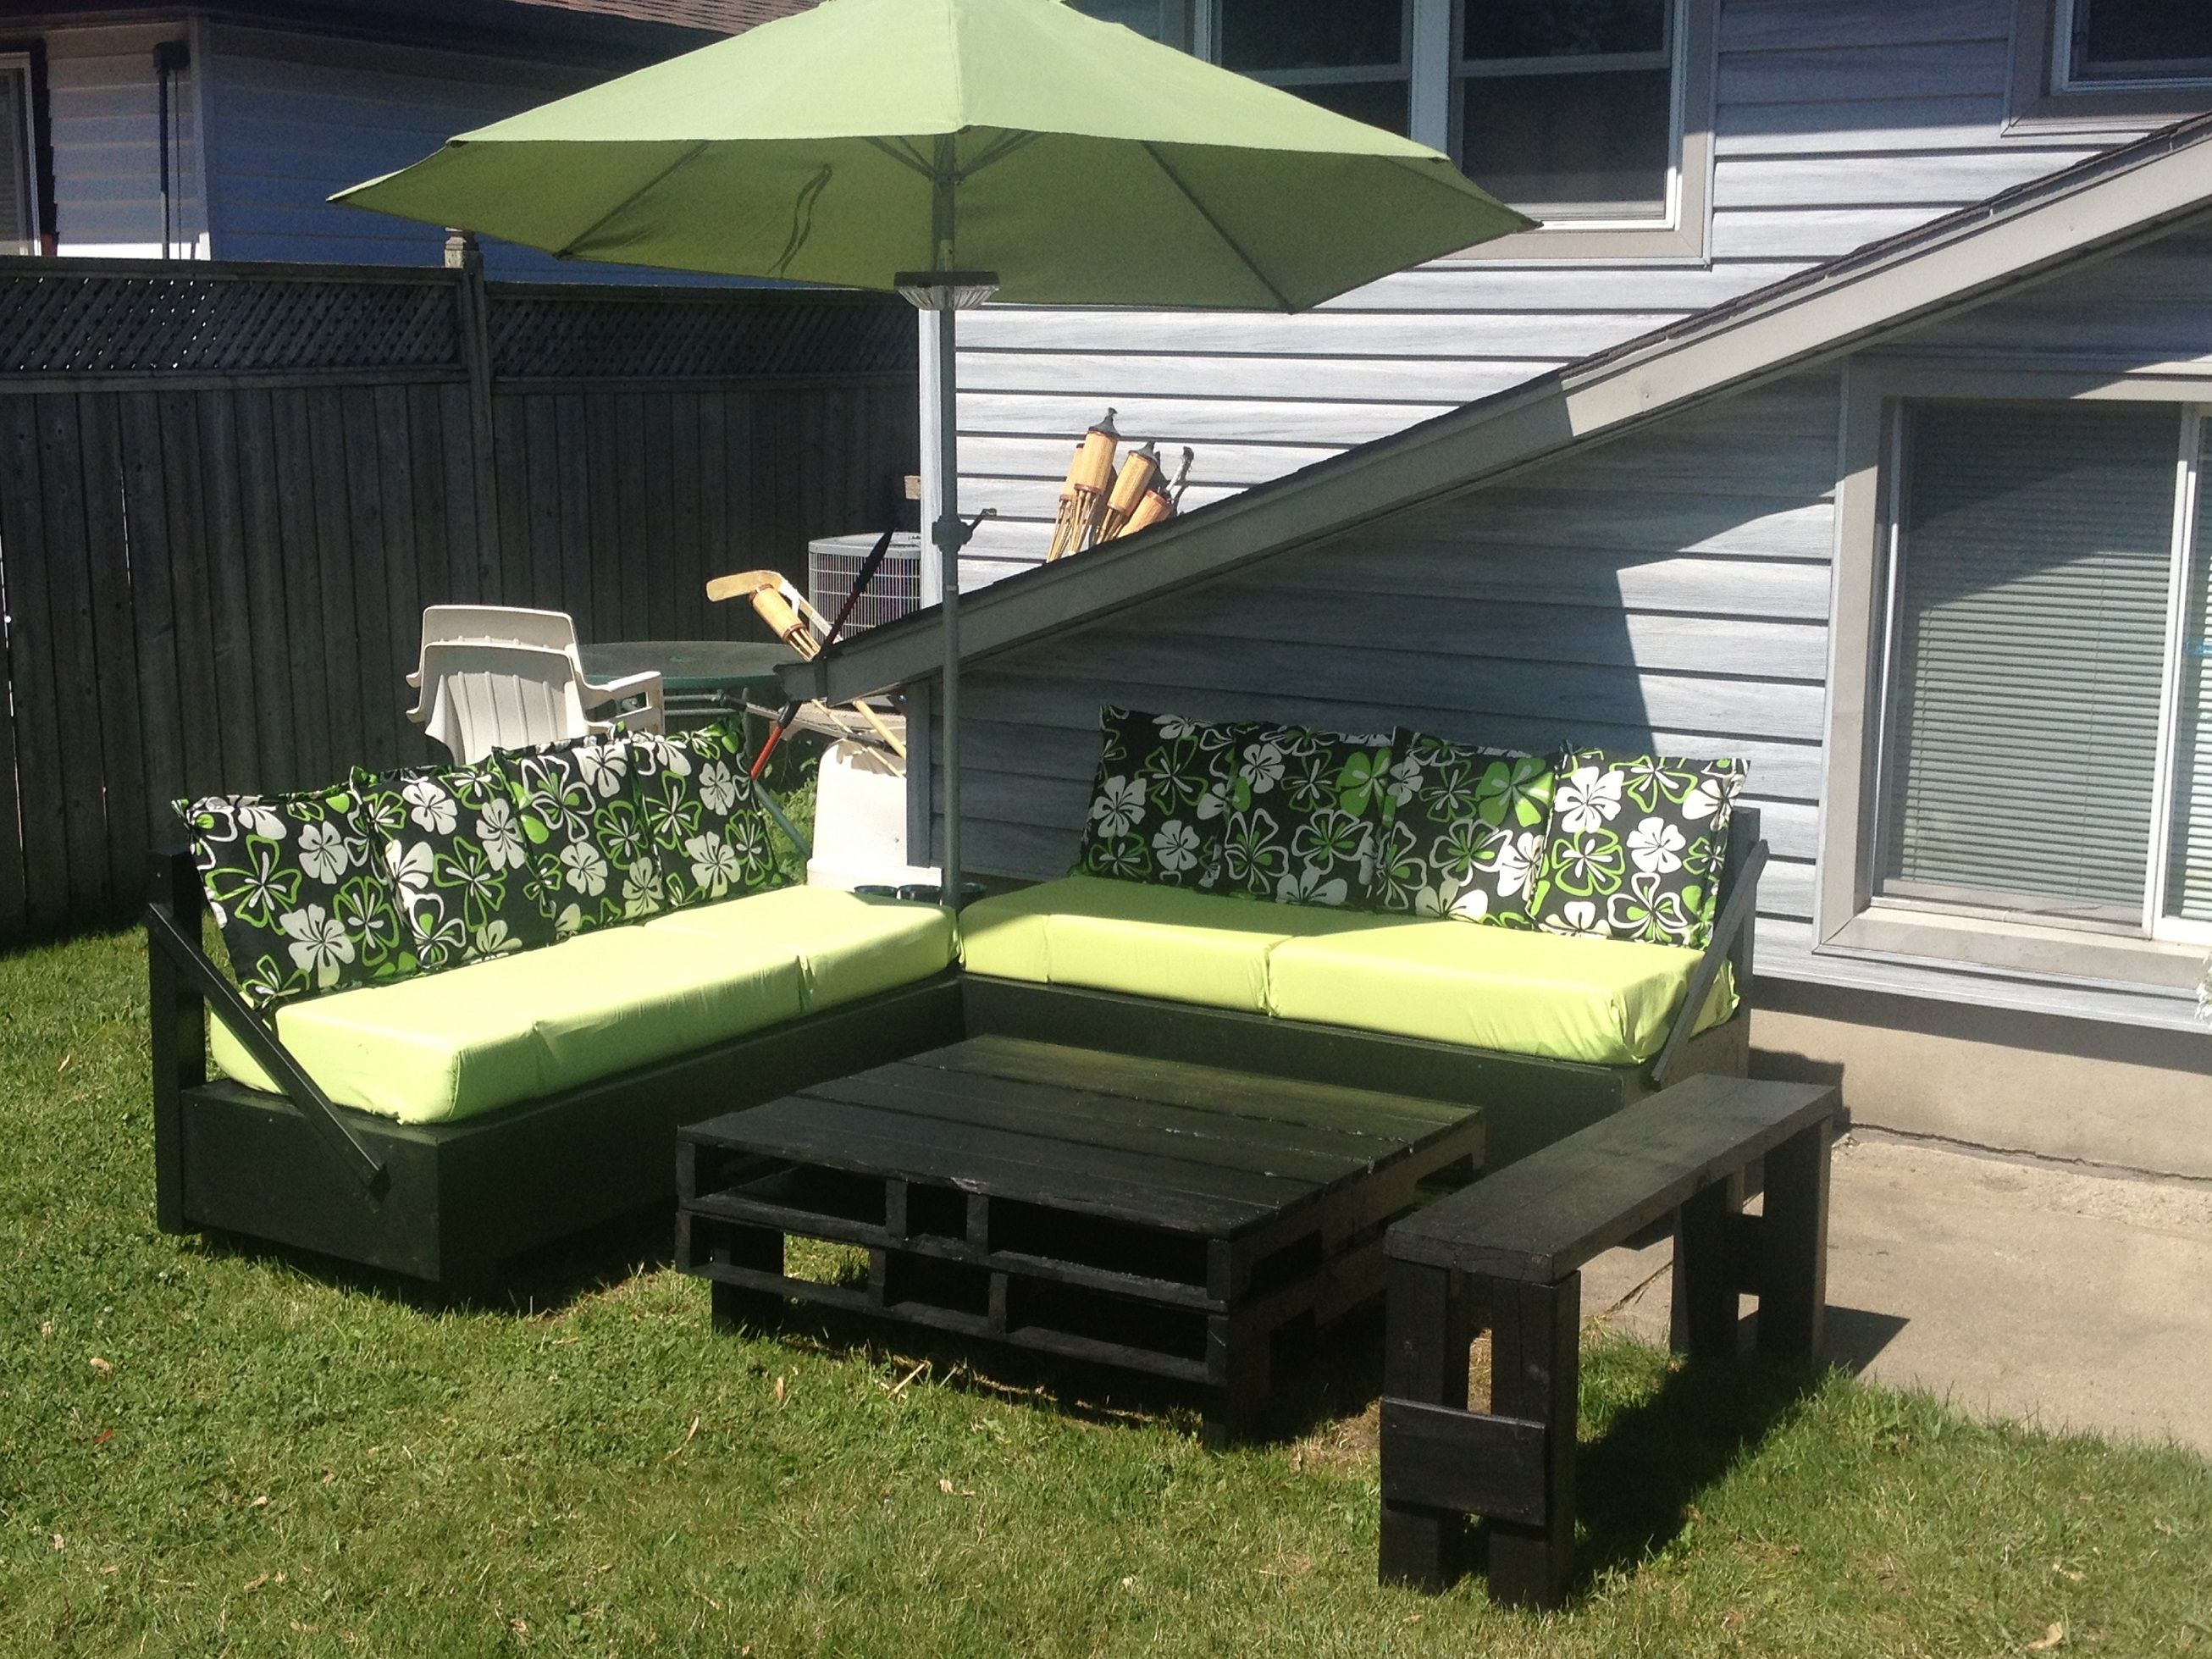 Diy Outdoor Patio Table Patio Furniture Out Of Pallets Oak Wood